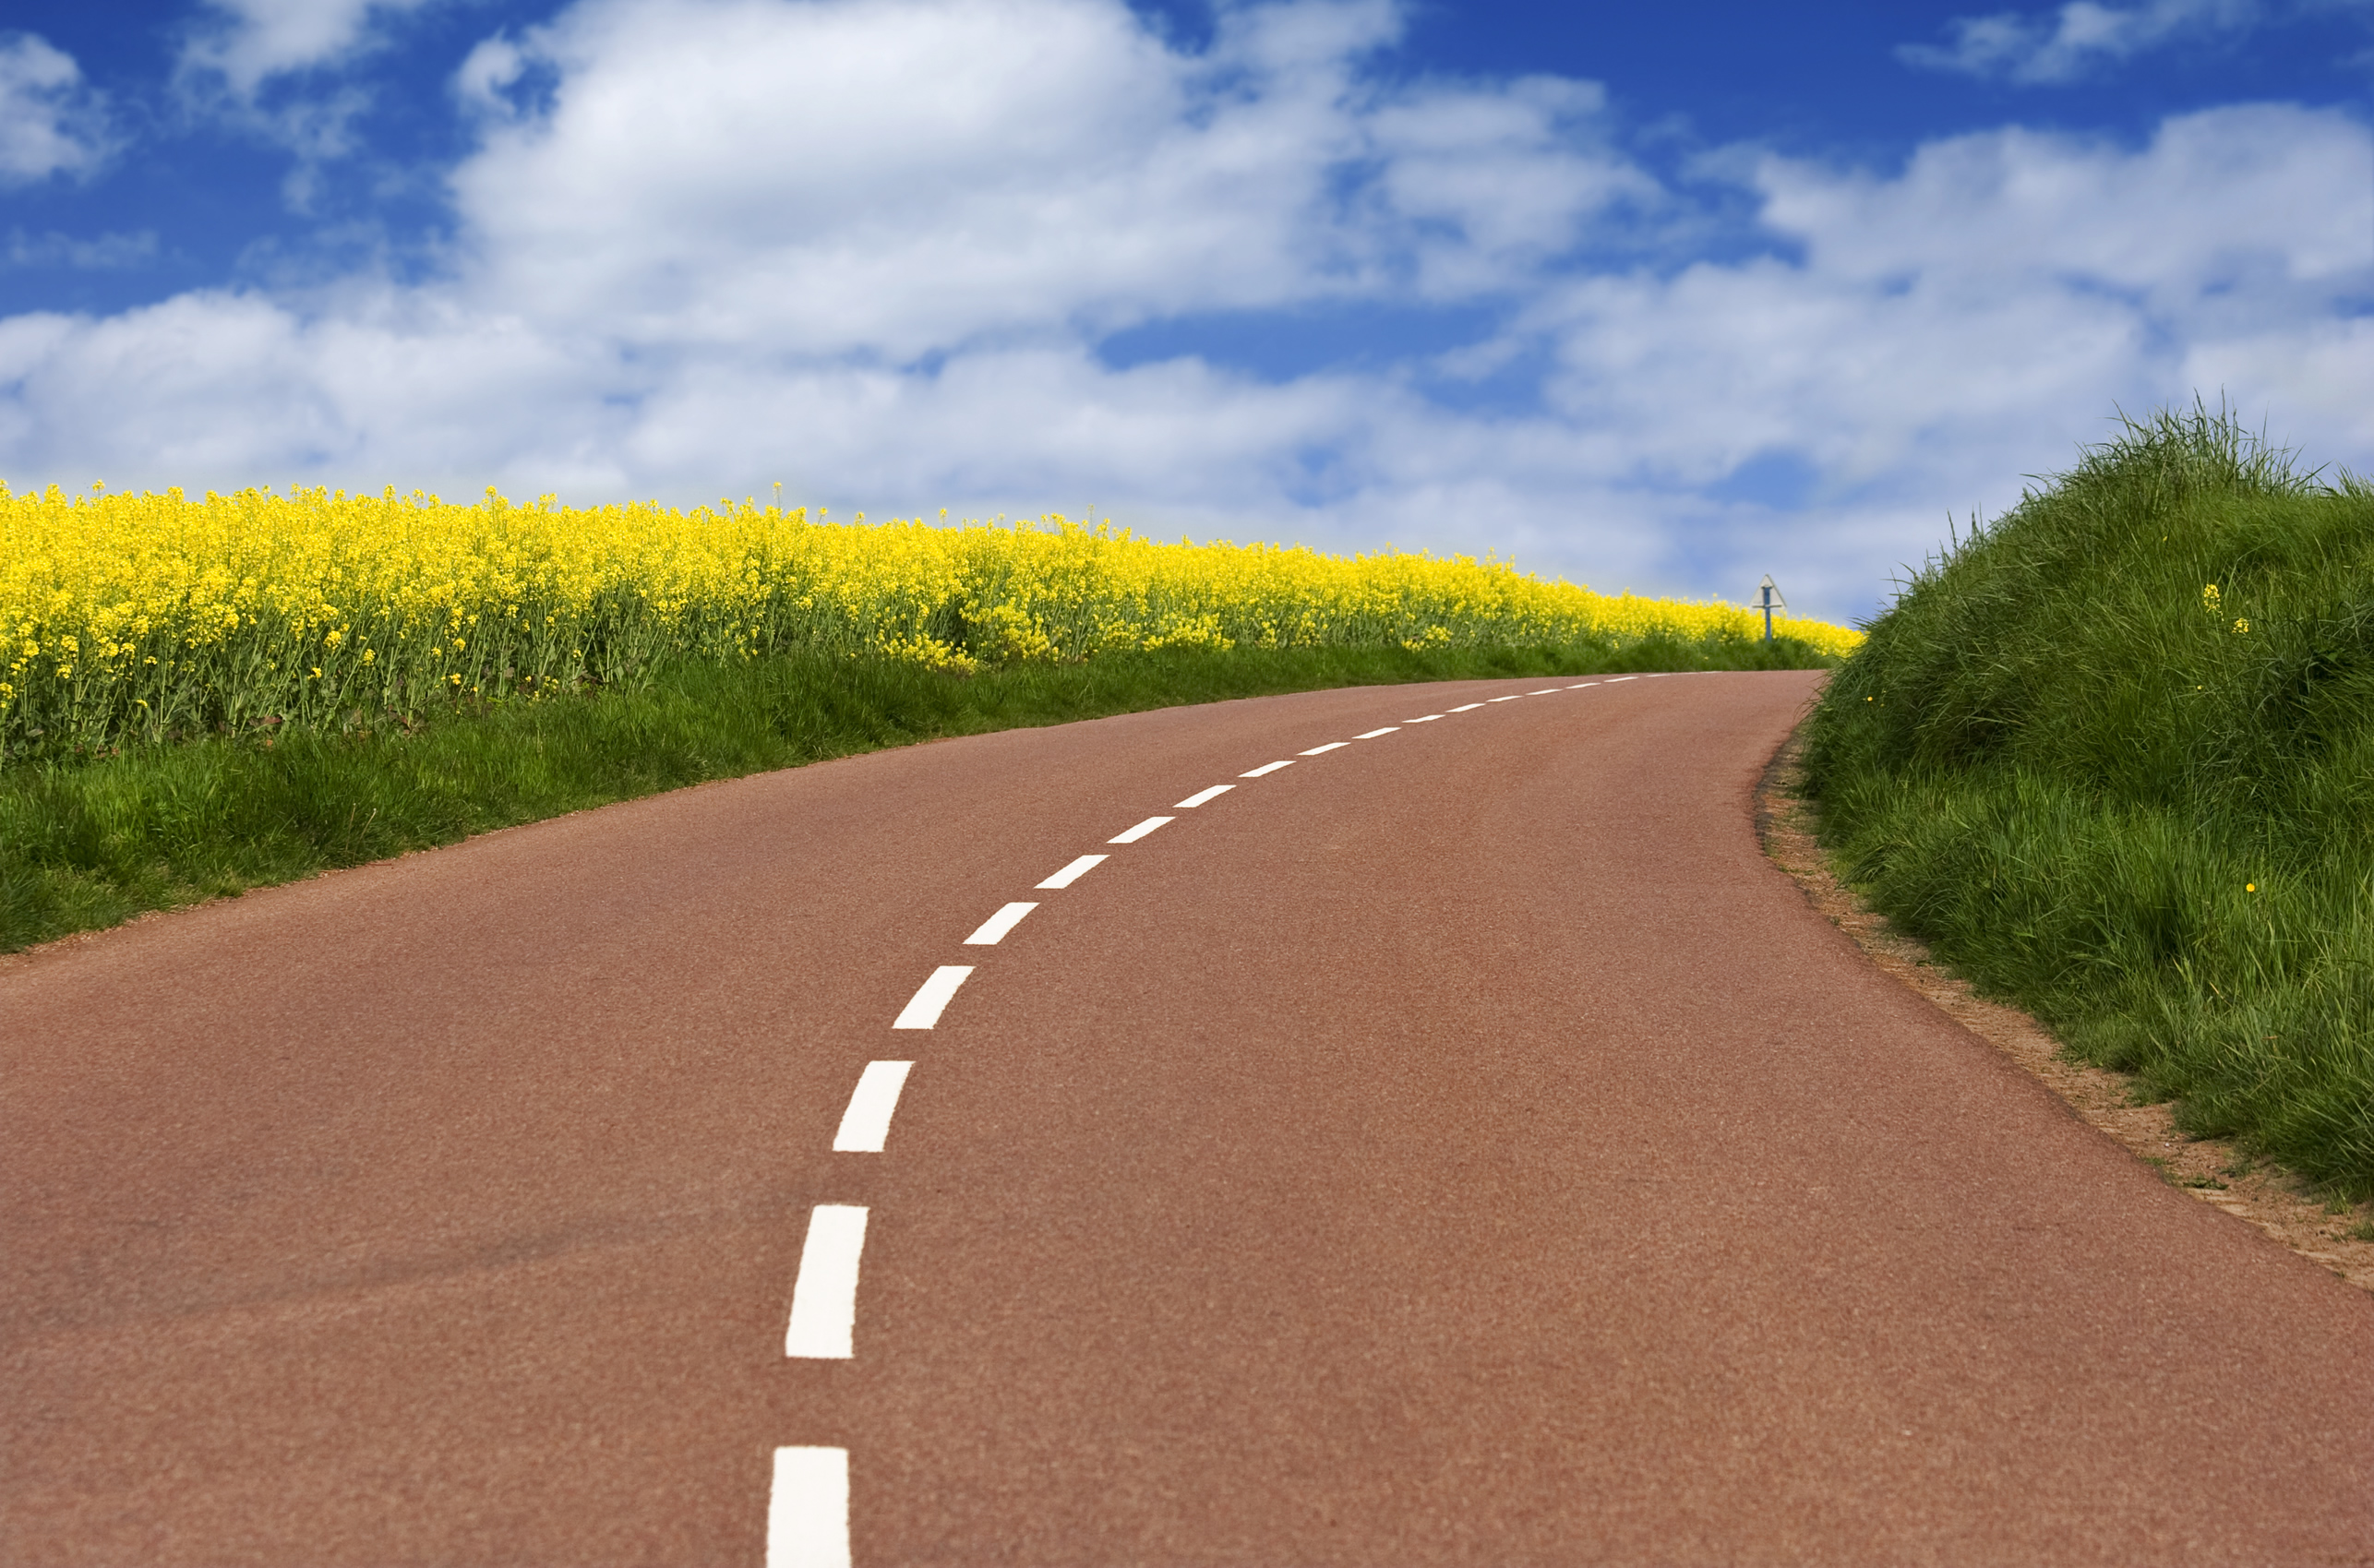 road background clip art - photo #15